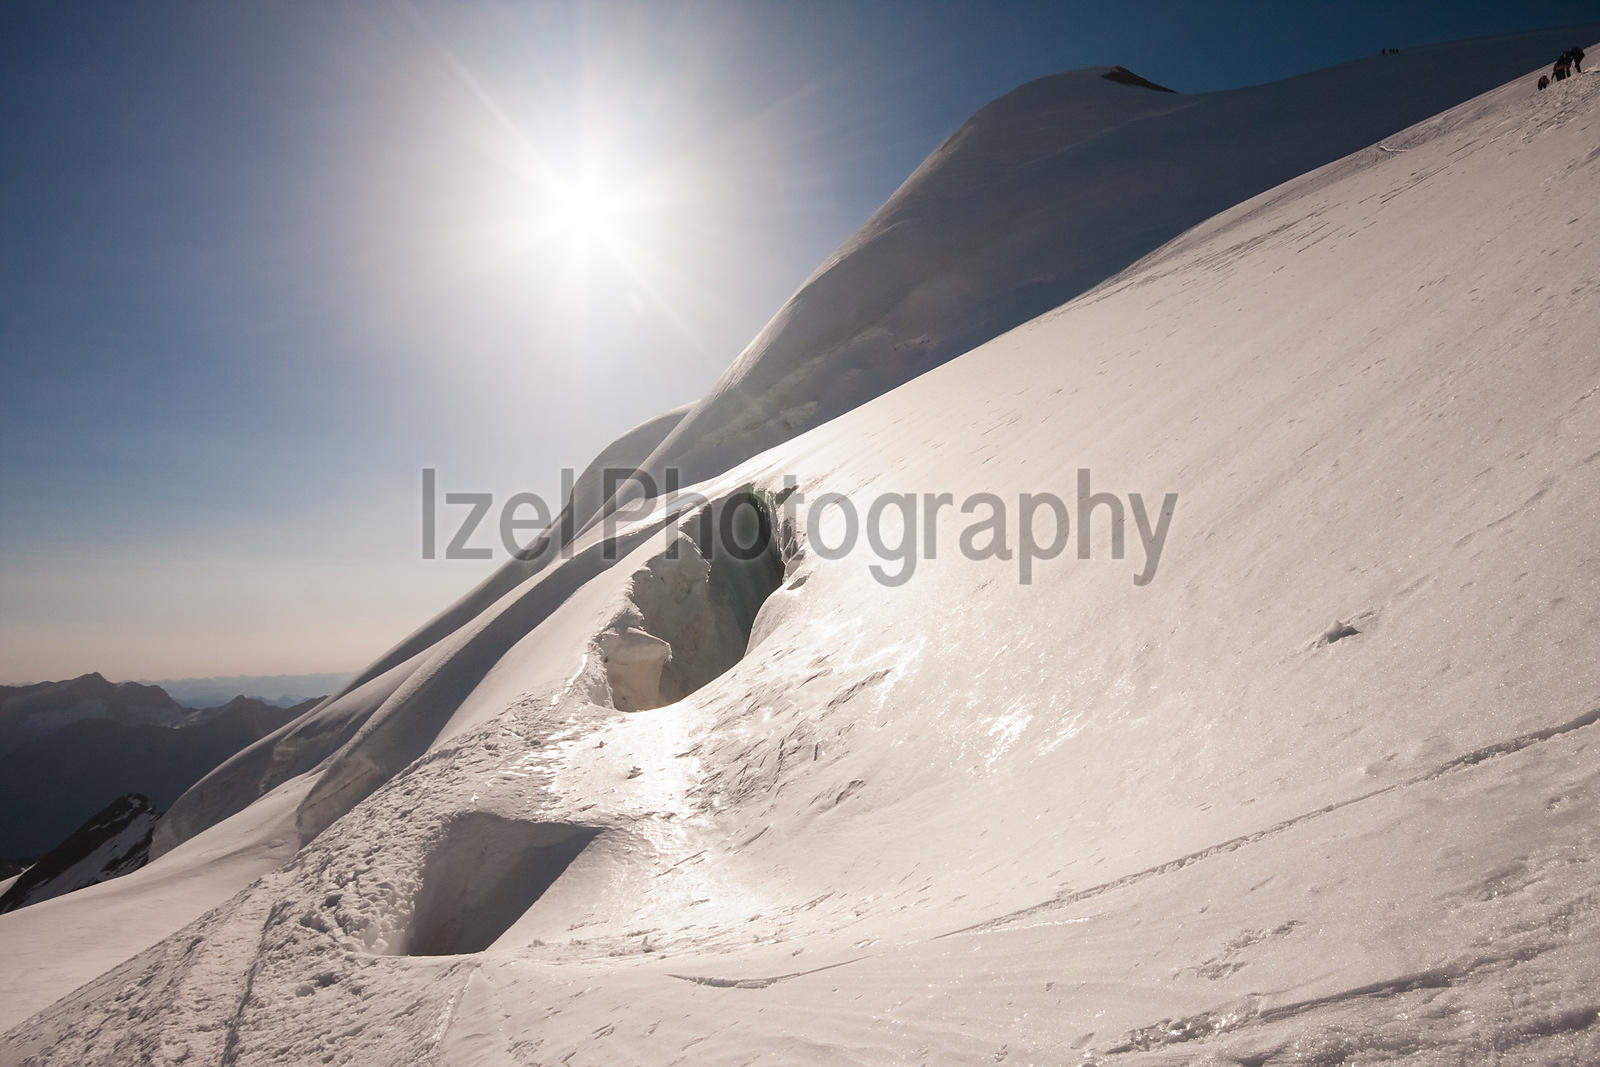 A snow bridge over a large crevasse on route to Feechopf Ridge. Saas Fee Switzerland.